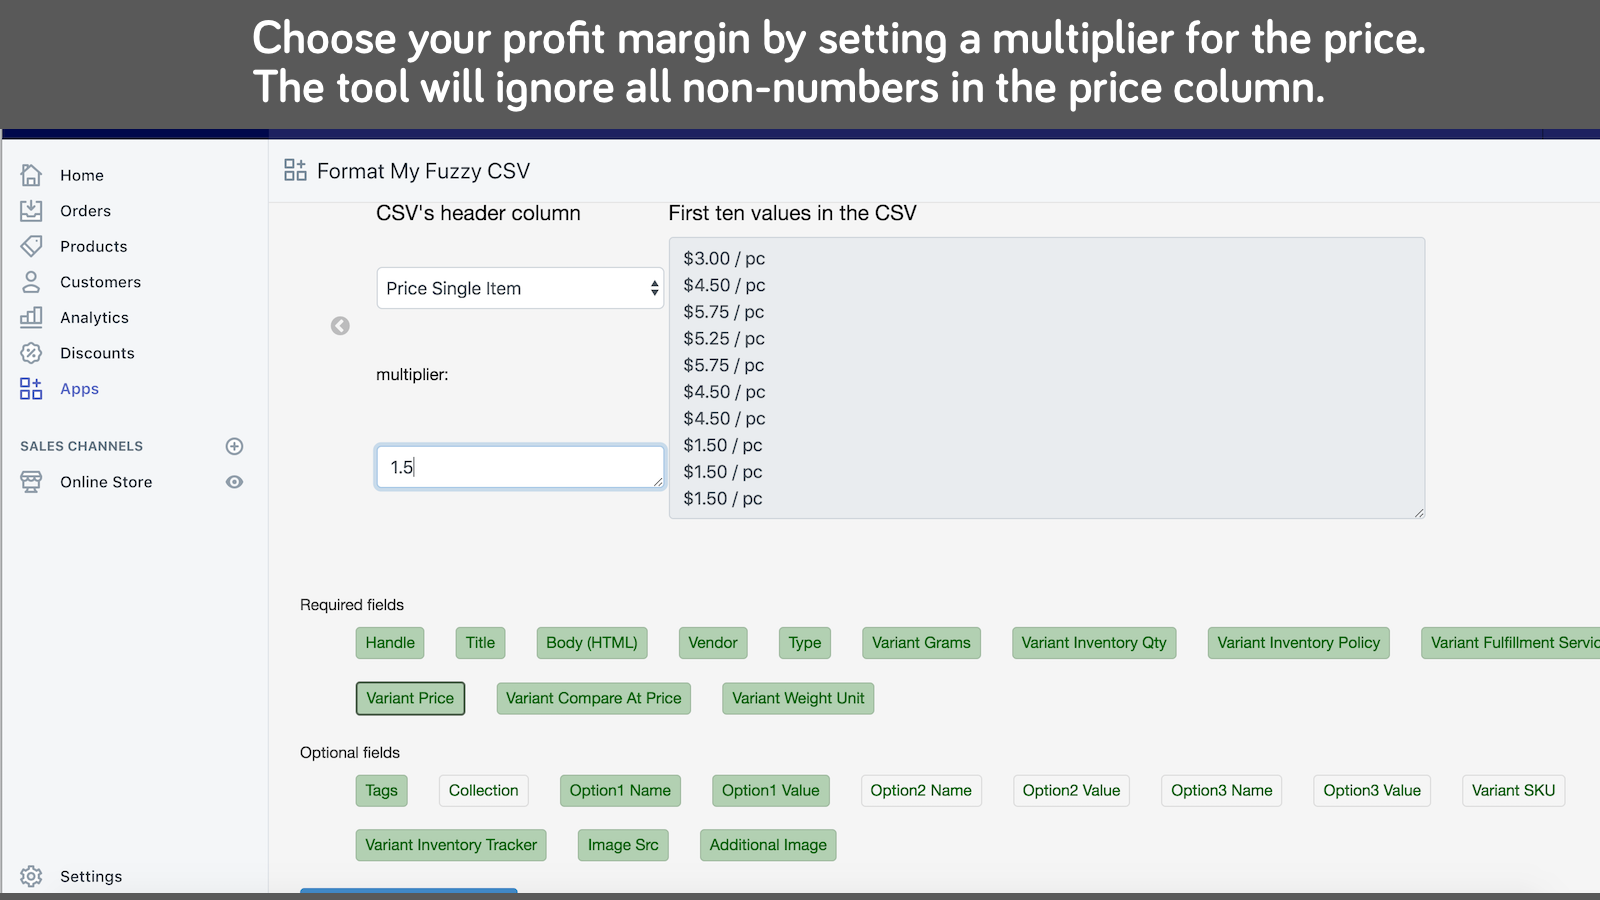 you can set multipliers for prices